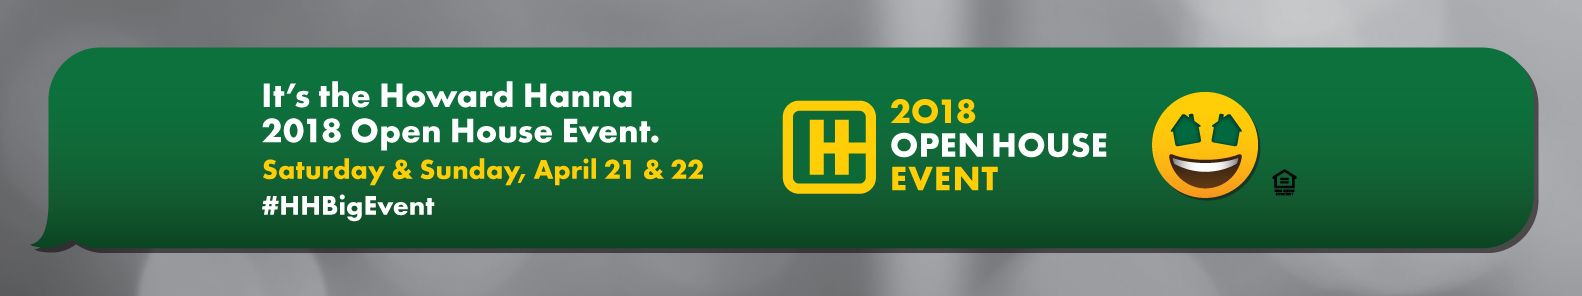 It's the Howard Hanna 2018 Open House Event. Saturday & Sunday, April 21 and 22. #HHBigEvent